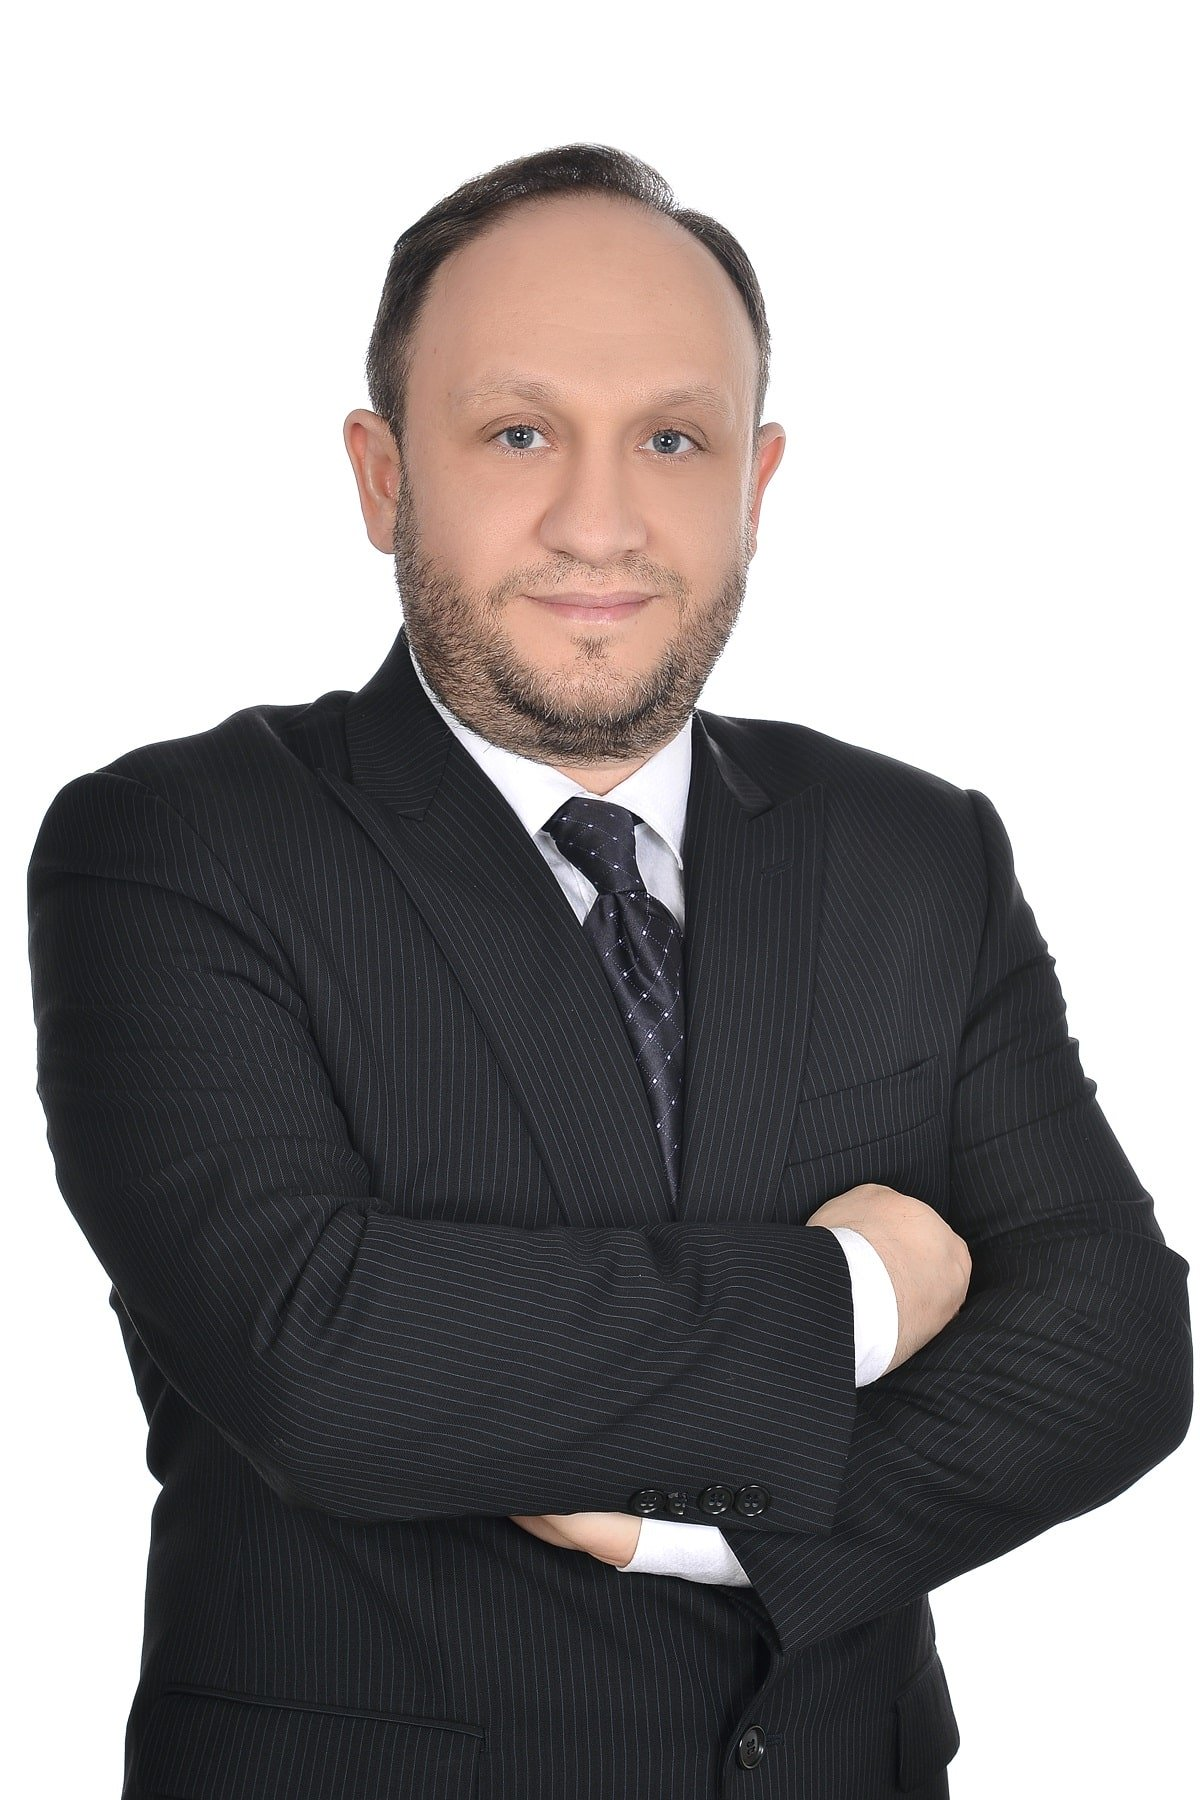 Dr. Mohamad Istanboli